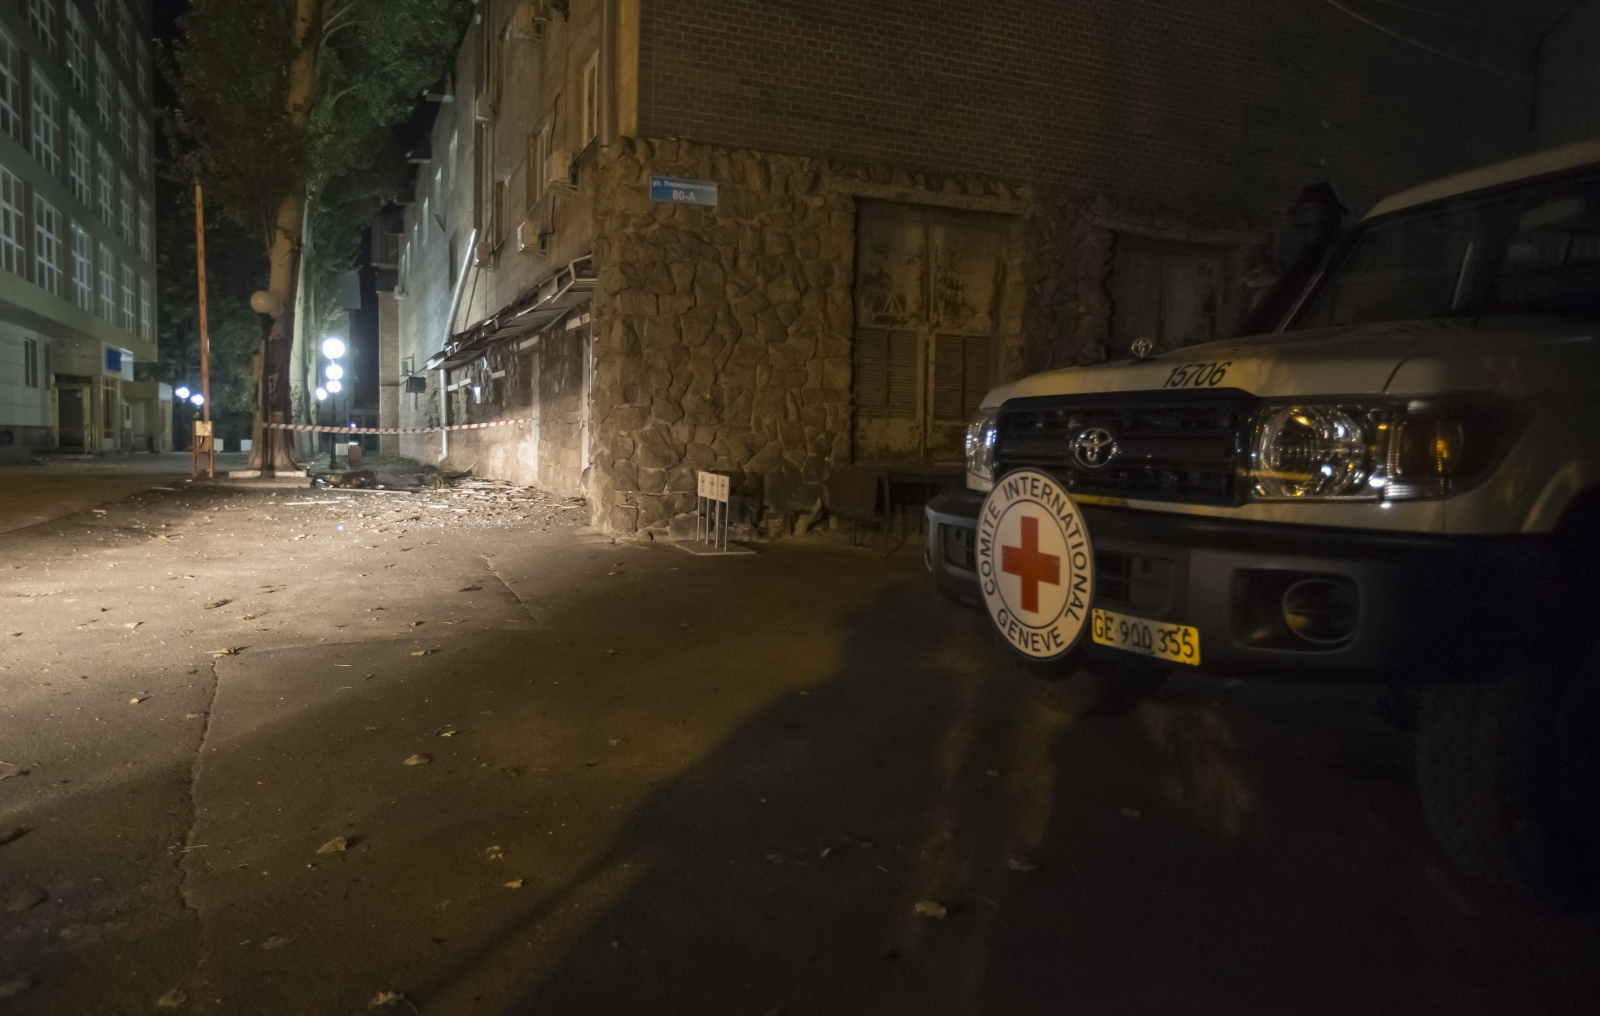 Ukraine: Red Cross Humanitarian Aid Worker Killed in Donetsk Mortar Attack